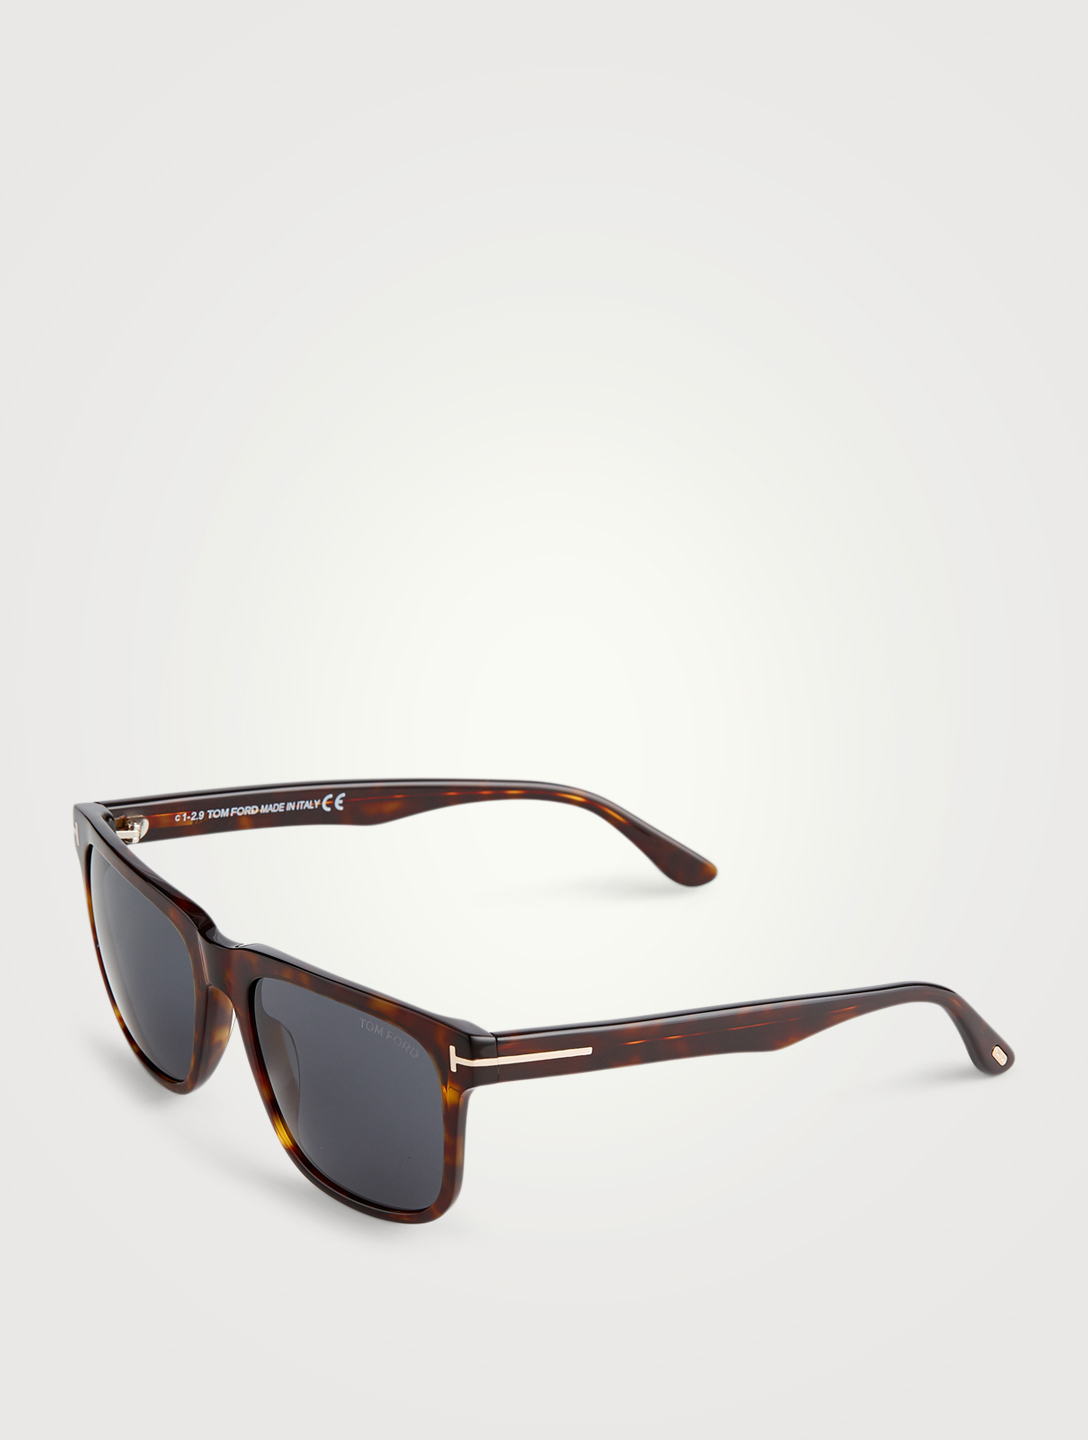 TOM FORD Stephenson Square Sunglasses Men's Brown